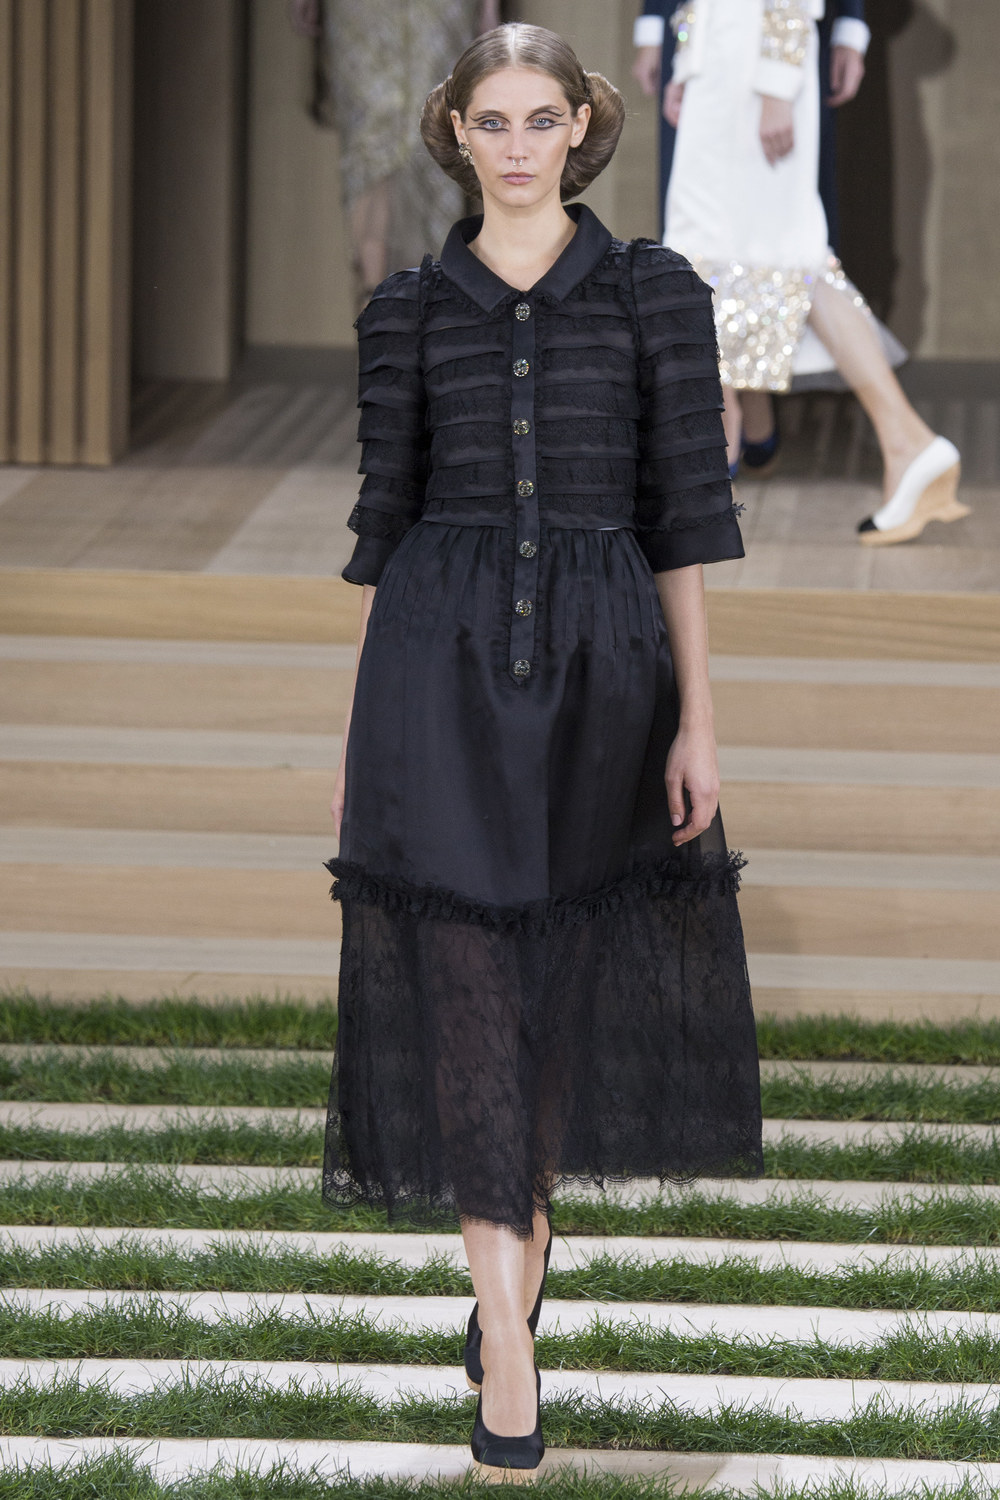 Chanel-Couture-Spring-2016-Paris-Fashion-Week-8.jpg